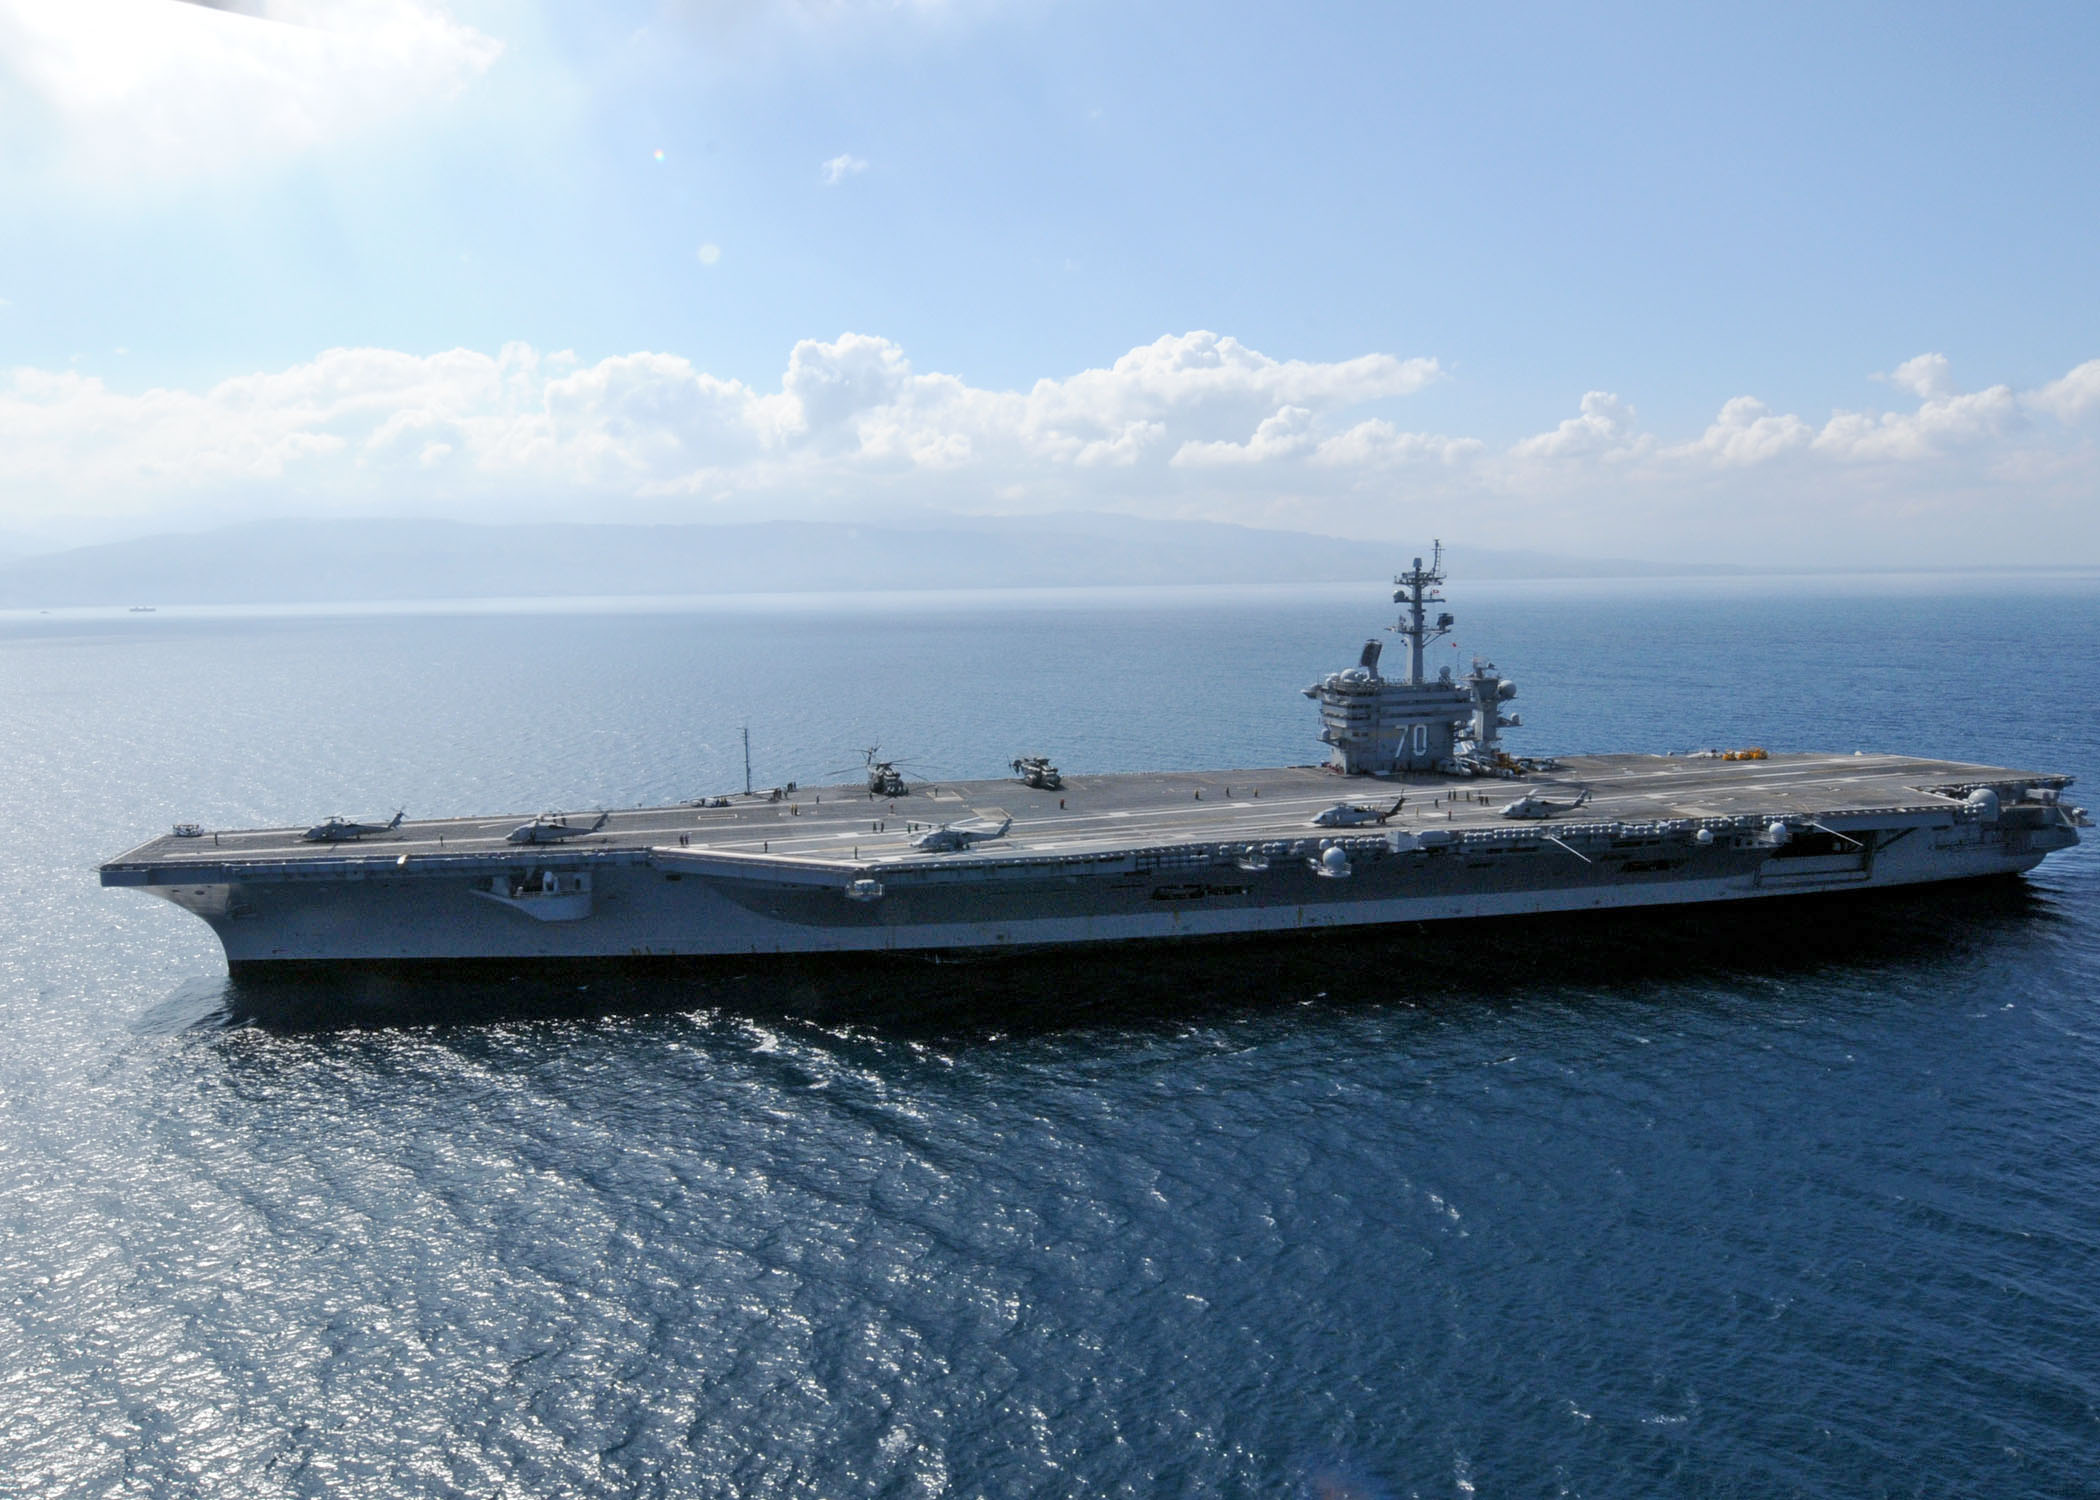 helicopter aircraft carrier with File Uss Carl Vinson  Cvn 70  Off Port Au Prince 17 Jan 2010 on UNIT BERBER CAVALRY besides 154kittyhawk furthermore File USS Carl Vinson  CVN 70  off Port Au Prince 17 Jan 2010 as well Holycityhelicopters further Stealth Ships.